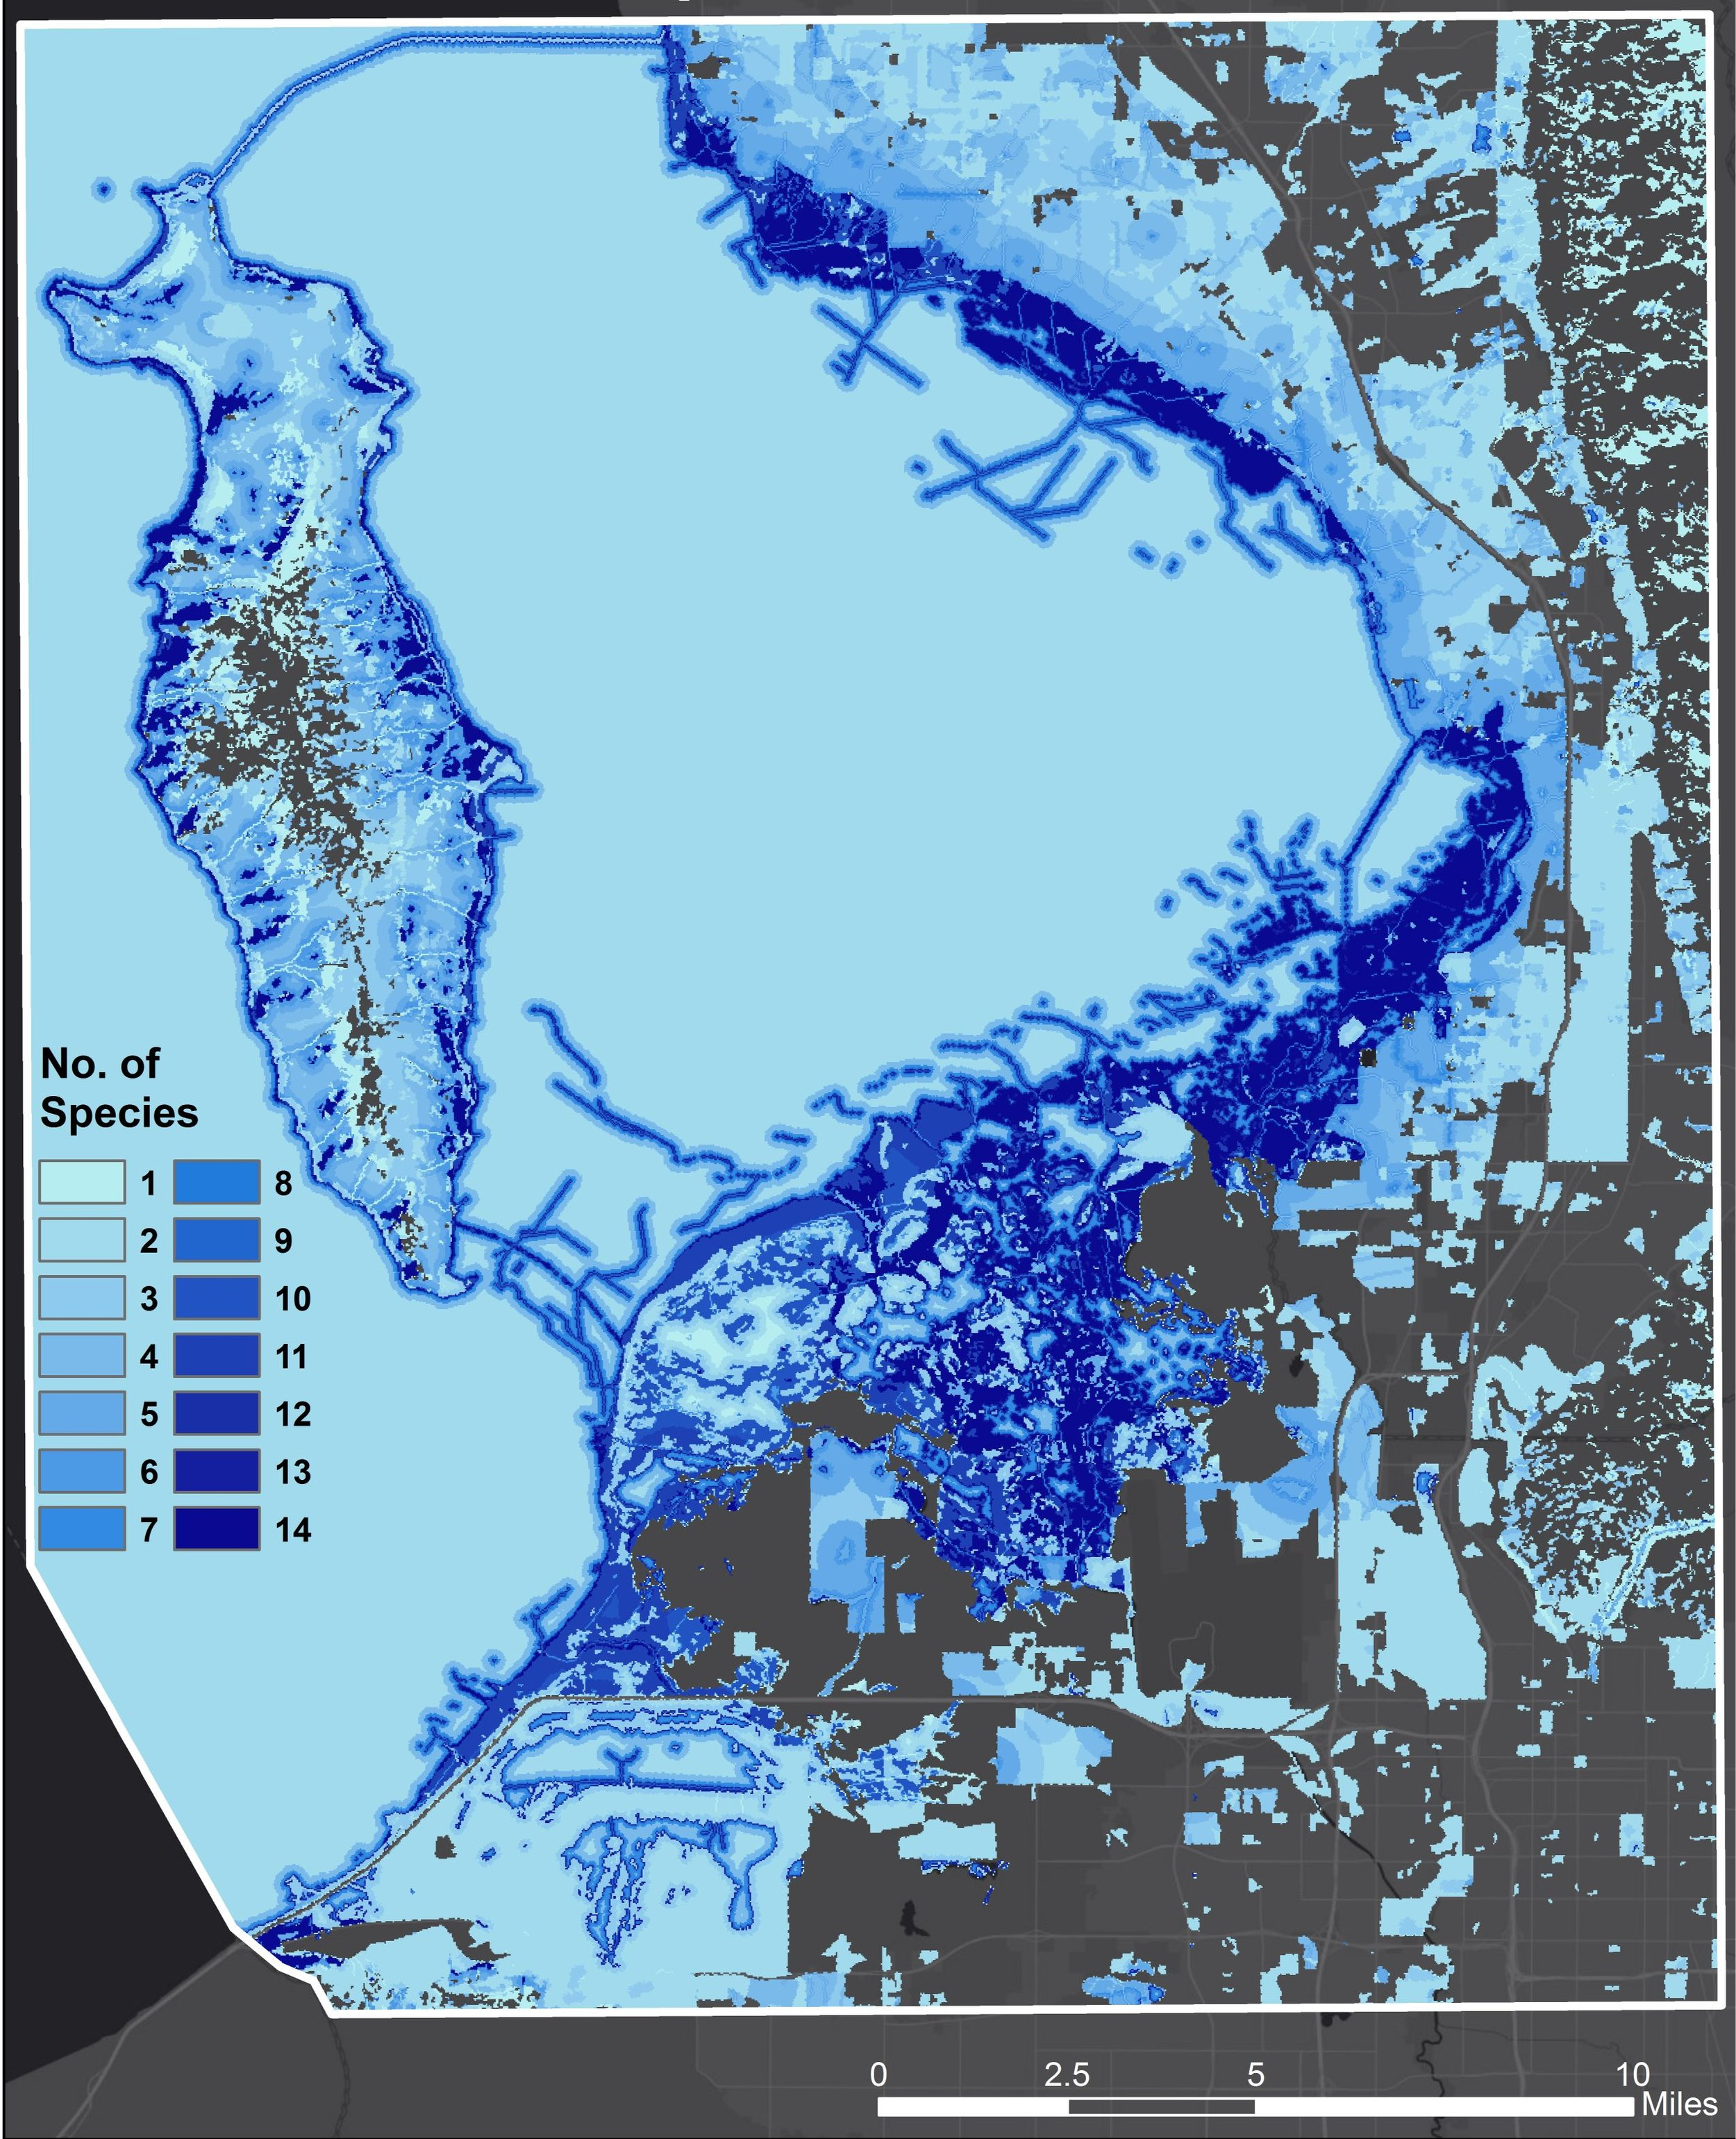 Figure 3: Mapped habitats of all 15 representative migratory bird species (includes shorebirds, waterbirds, and waterfowl). Areas with the greatest amount of species overlap are the darkest blue. Map created by Aubin Douglas using USGS GAP data.